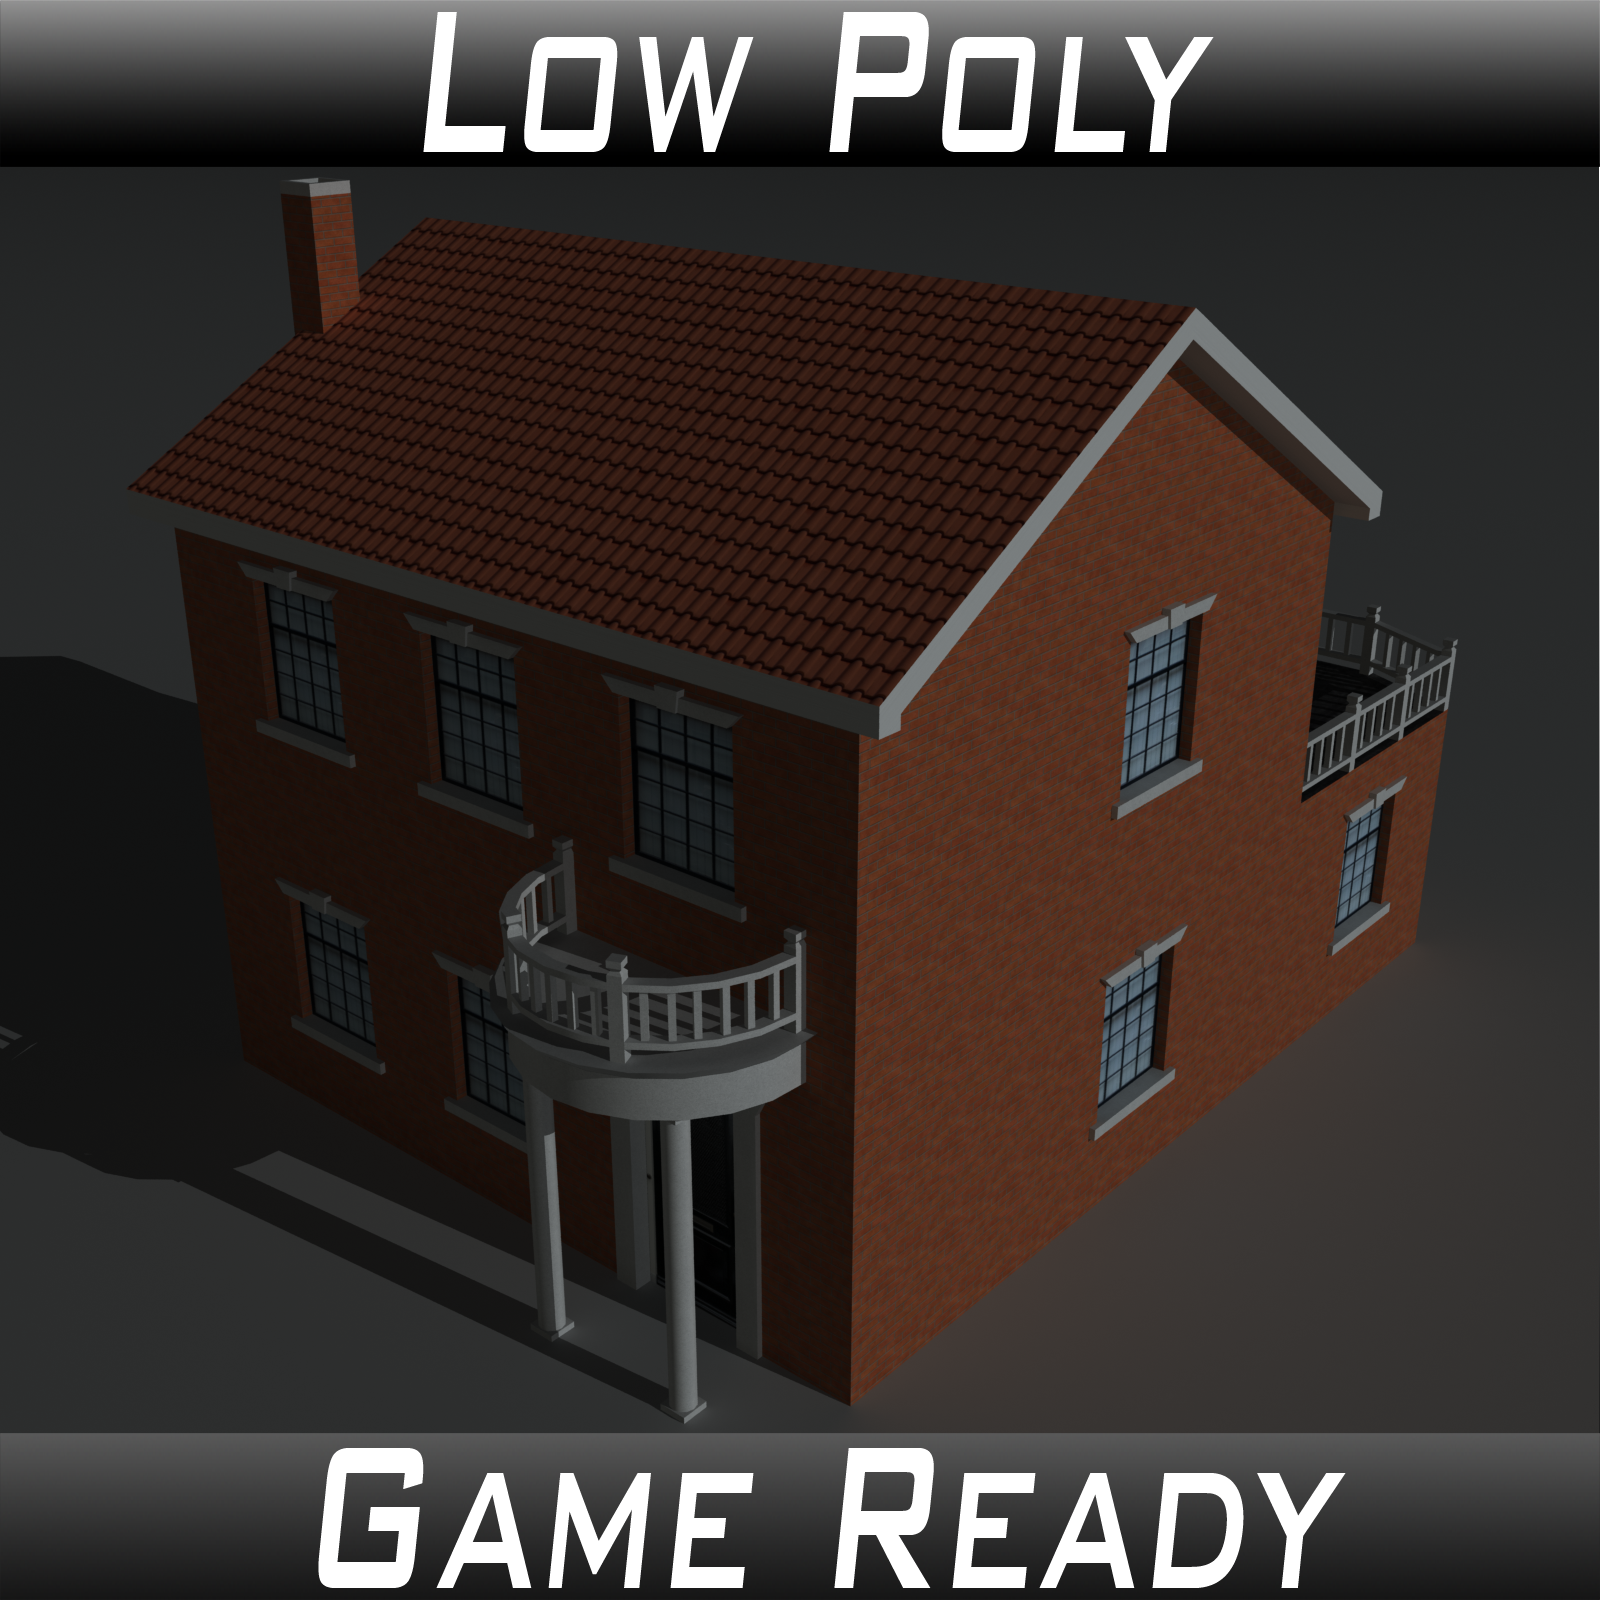 Low Poly House 9 - Extended Licence by 3dlands